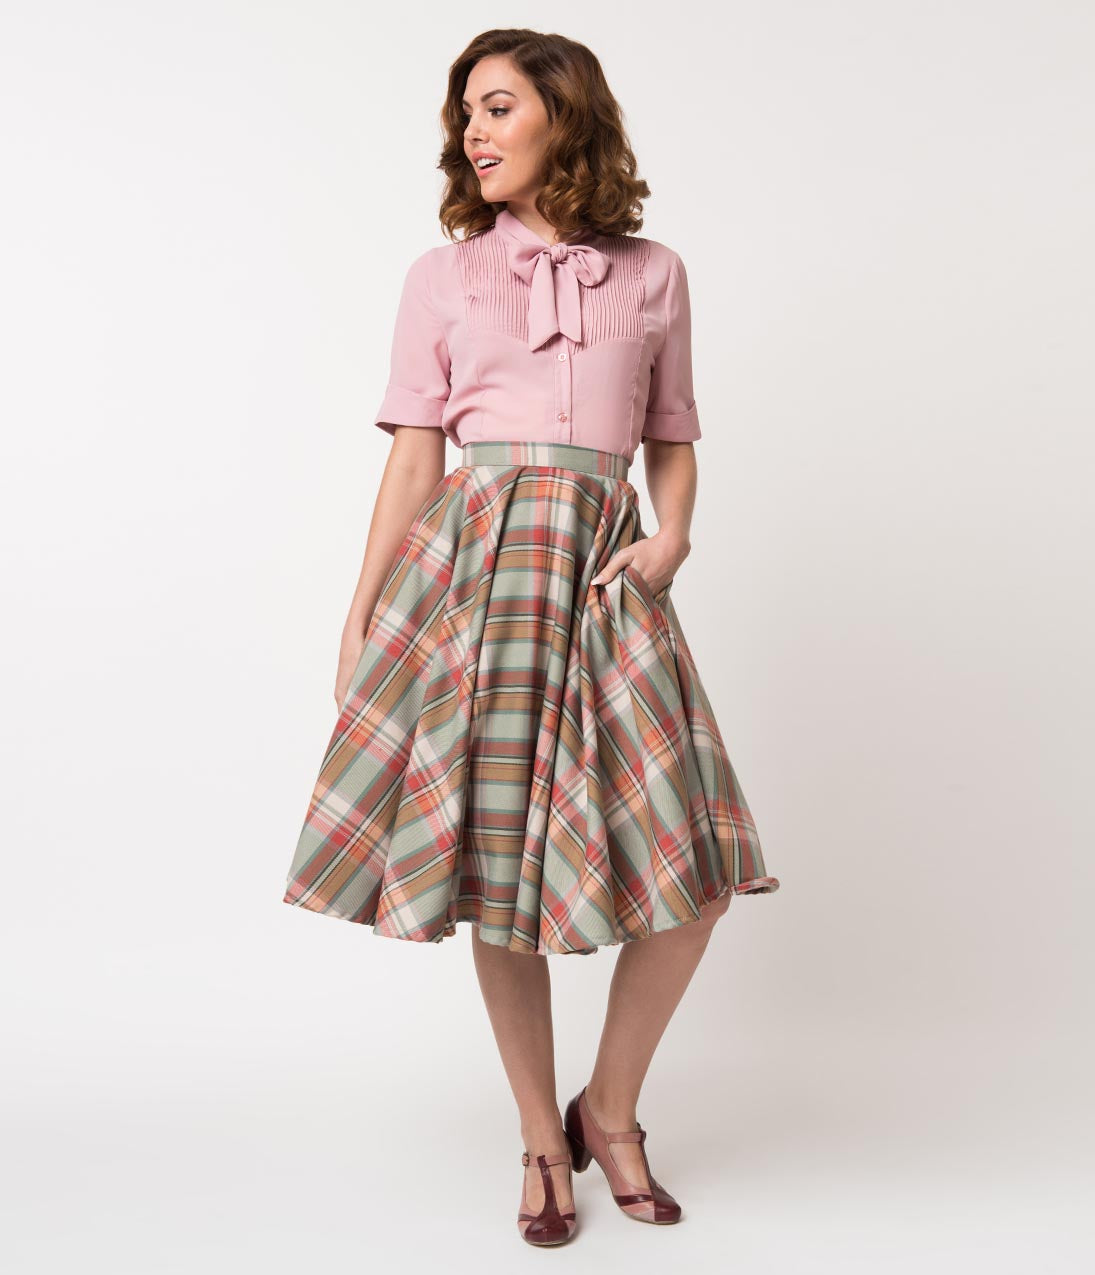 50s Skirt Styles | Poodle Skirts, Circle Skirts, Pencil Skirts Vintage Style Mint  Cream Plaid Cotton Circle Swing Skirt $62.00 AT vintagedancer.com